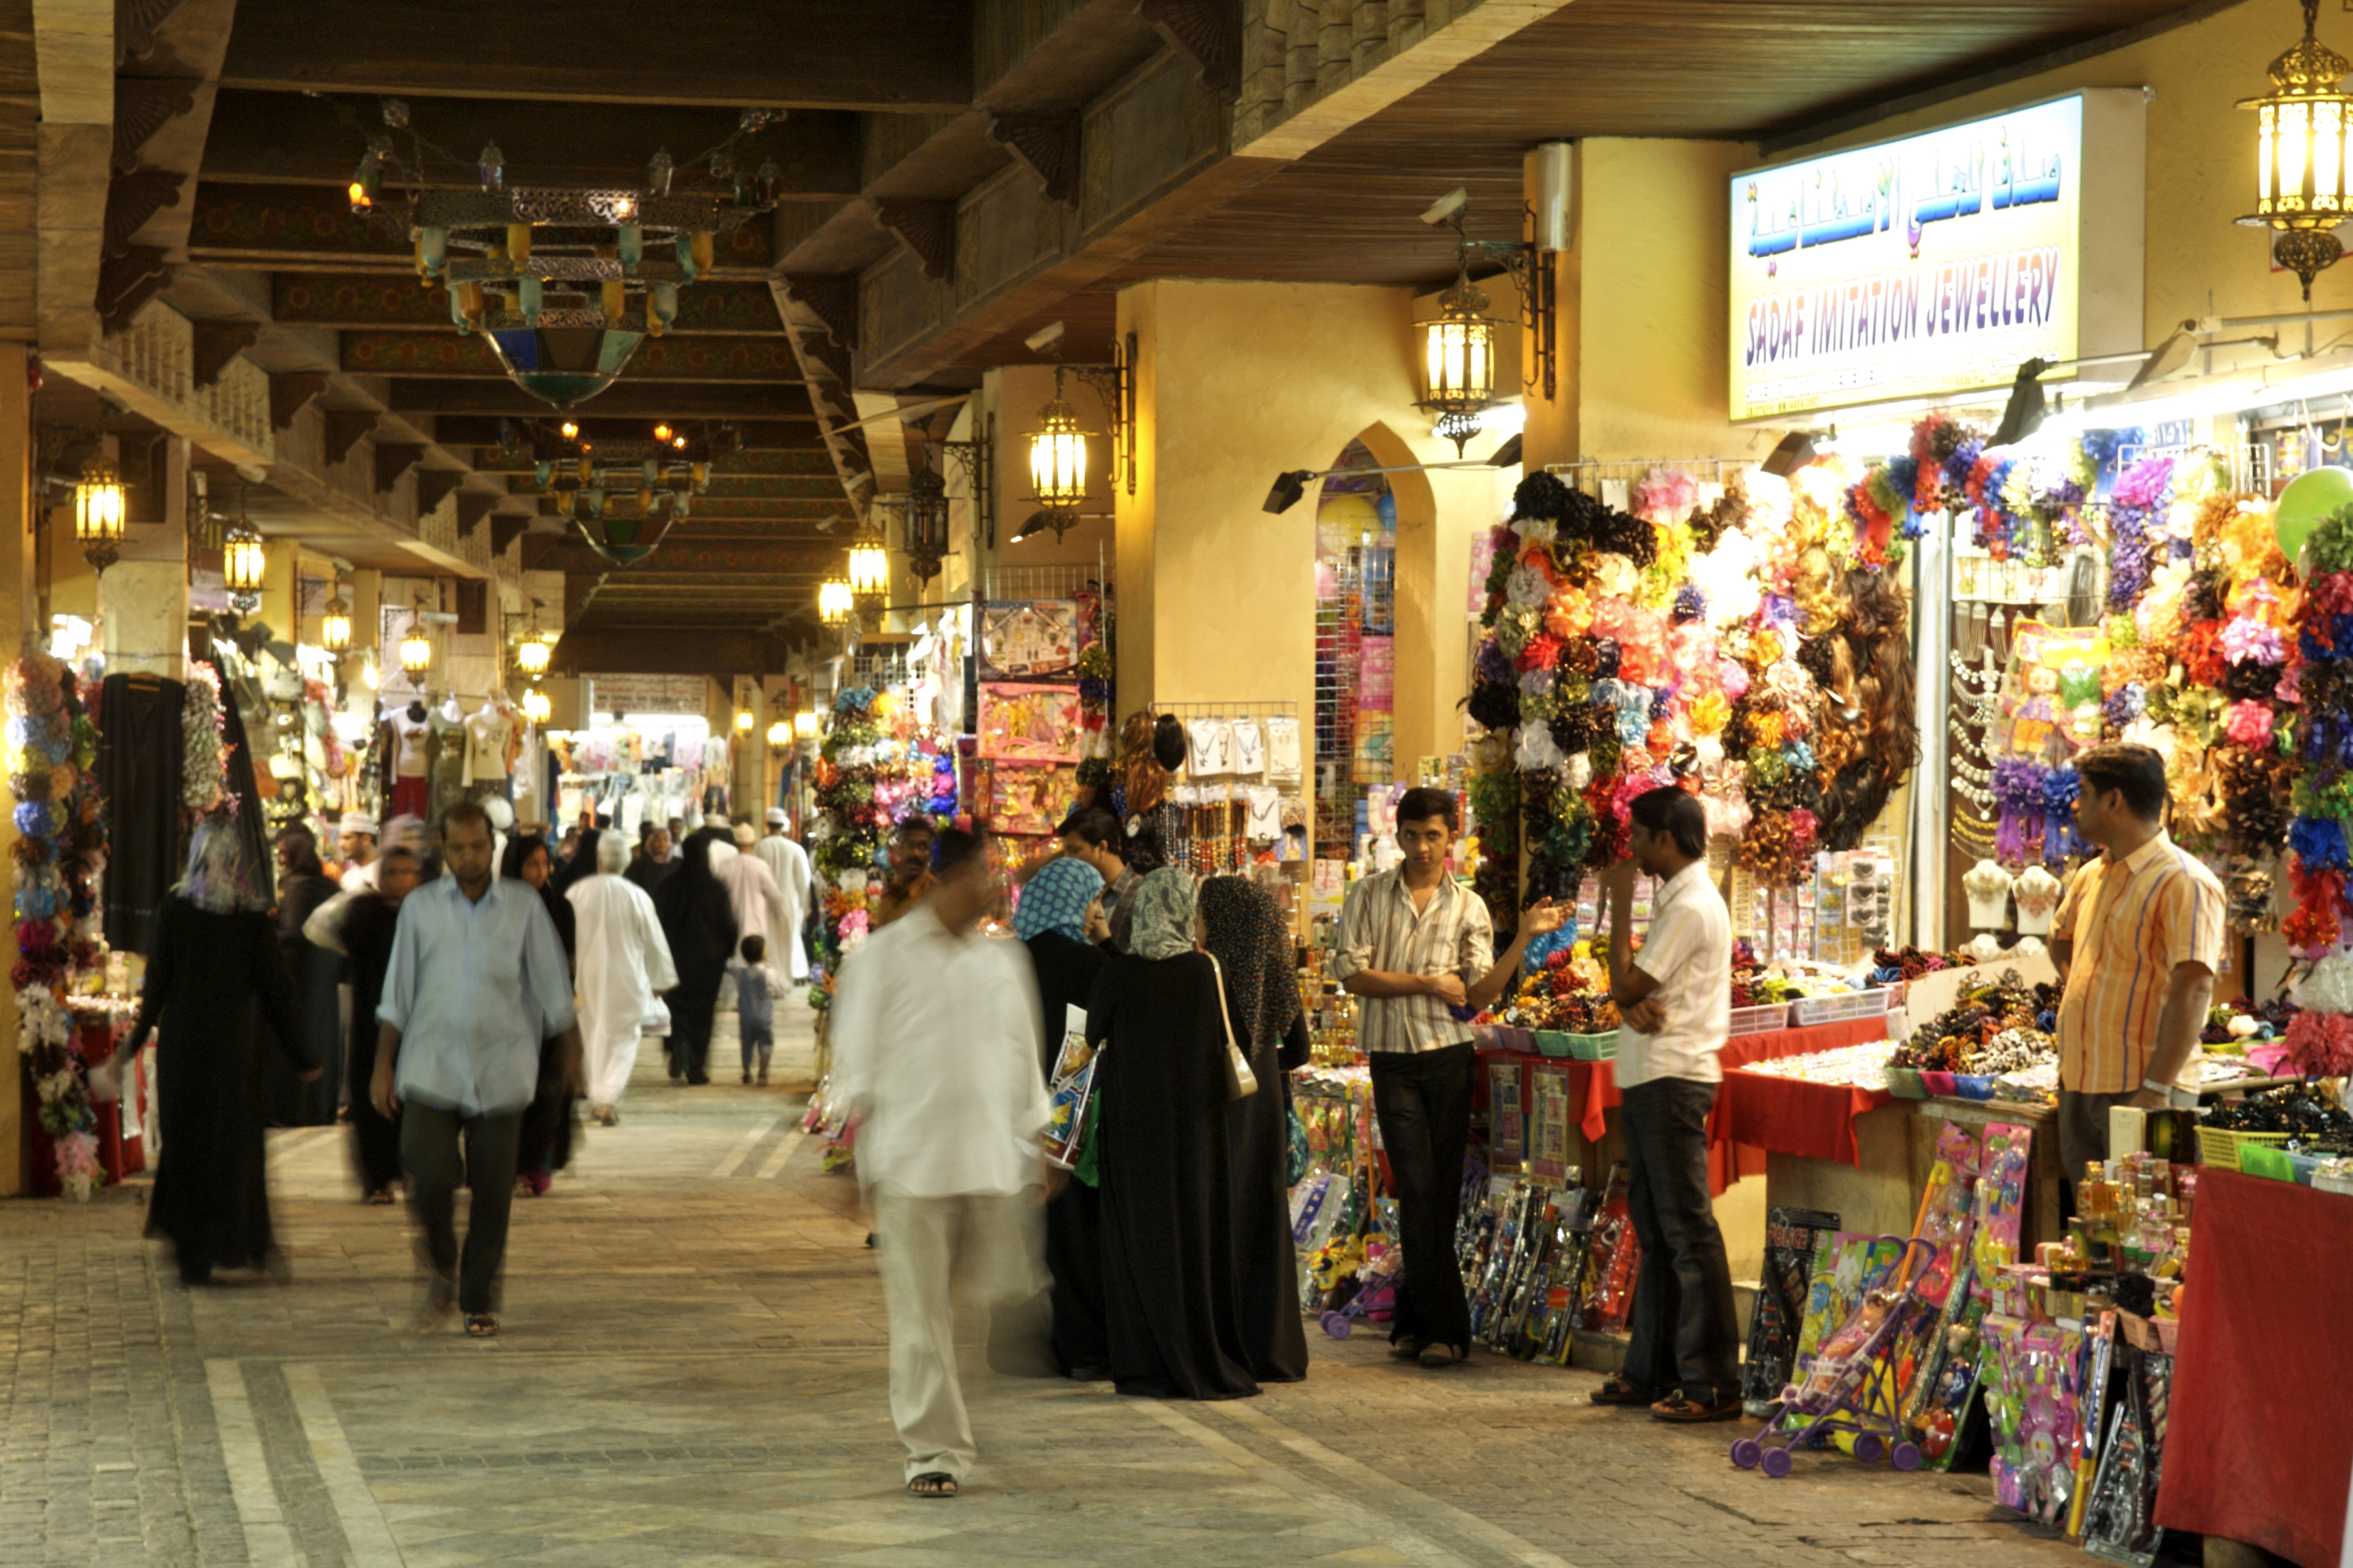 Mutrah Souq | Muscat, Oman Attractions - Lonely Planet